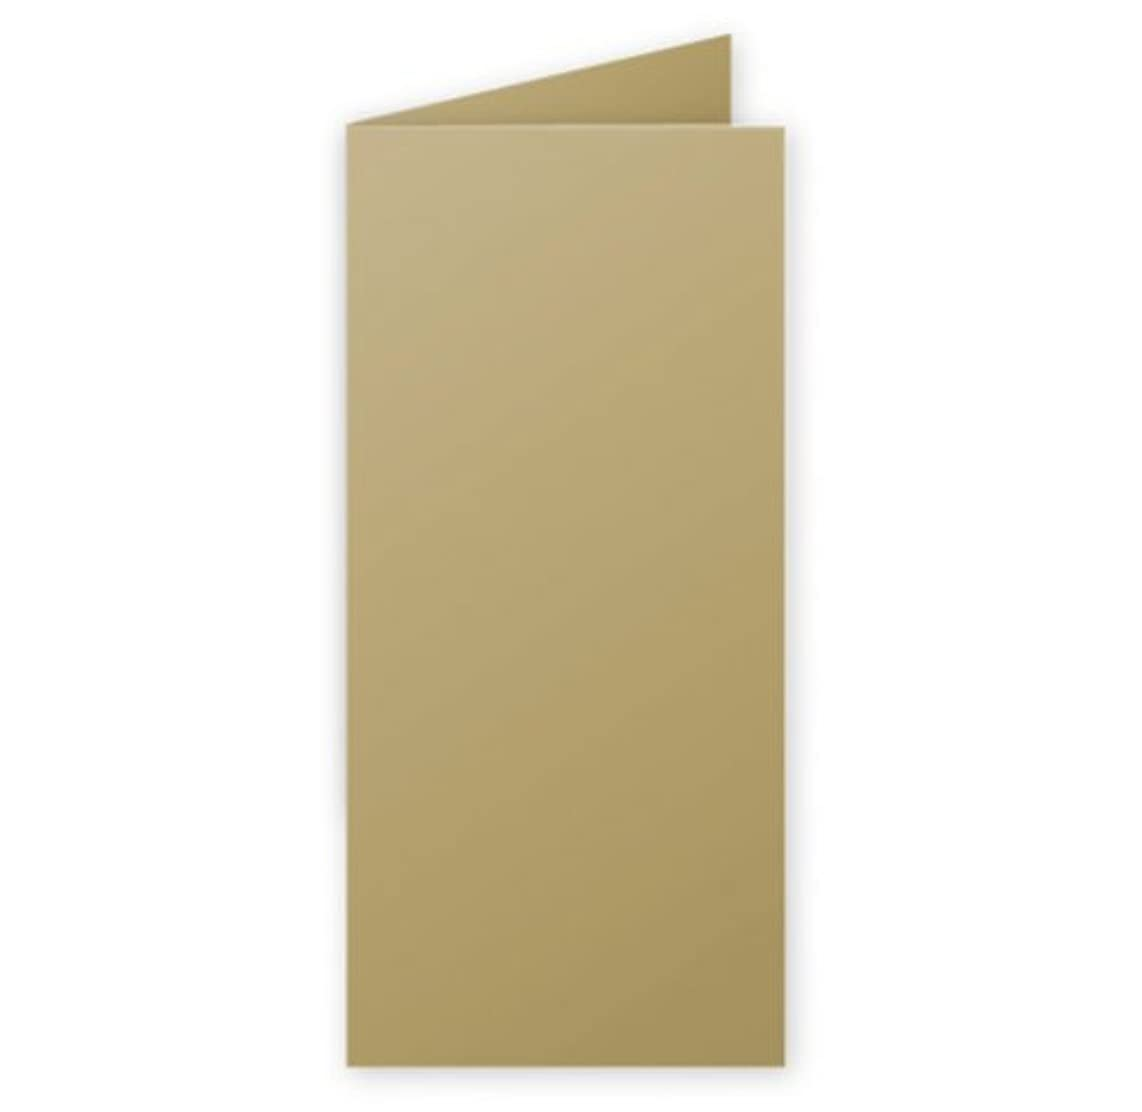 Clairefontaine 21506?°C Pollen Pack of 25?Cards Folded 10.6?x 21.3?cm 21.30 x 10.60 x 0.10 Gold